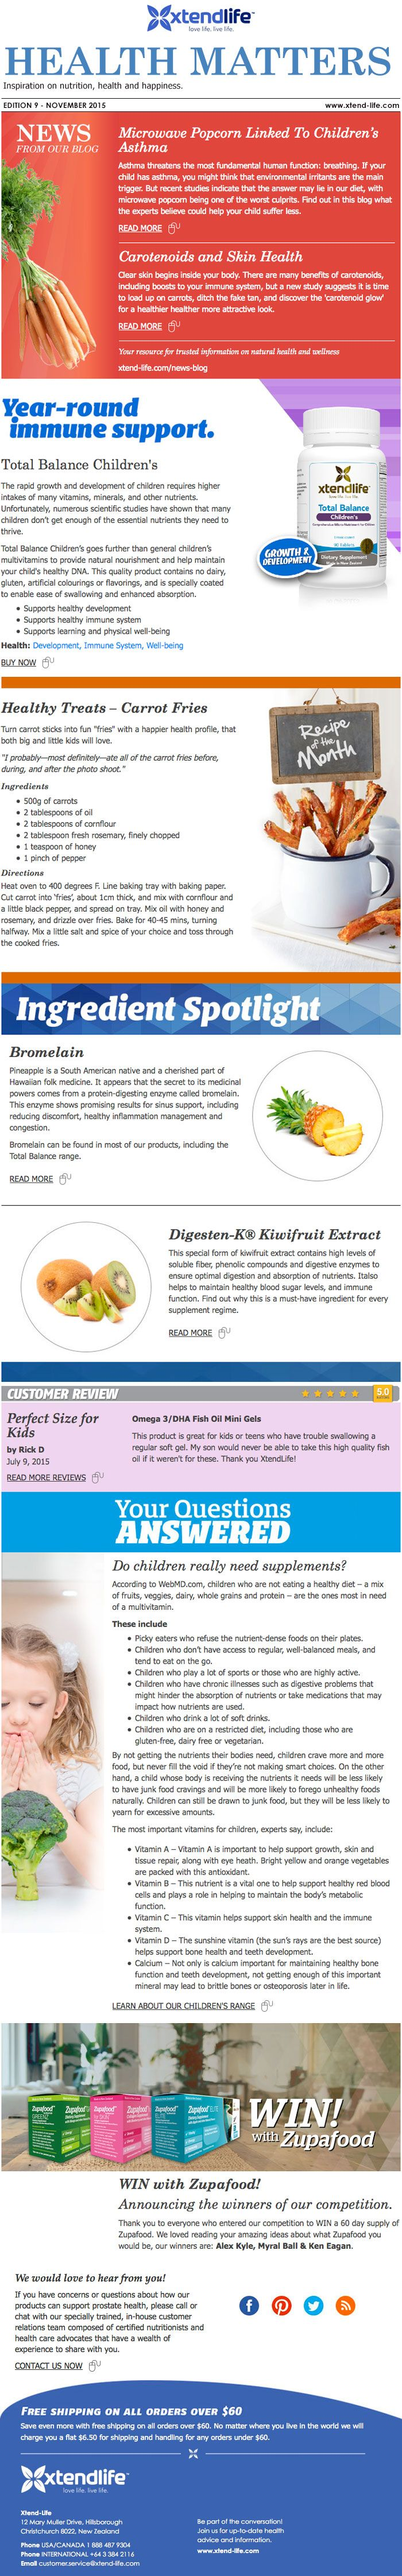 Health Matters  |  Microwave Popcorn Linked To Children's Asthma  |  Carotenoids and Skin Health  |  Total Balance Children's  |  Healthy Treats - Carrot Fries  |  Bromelain  |